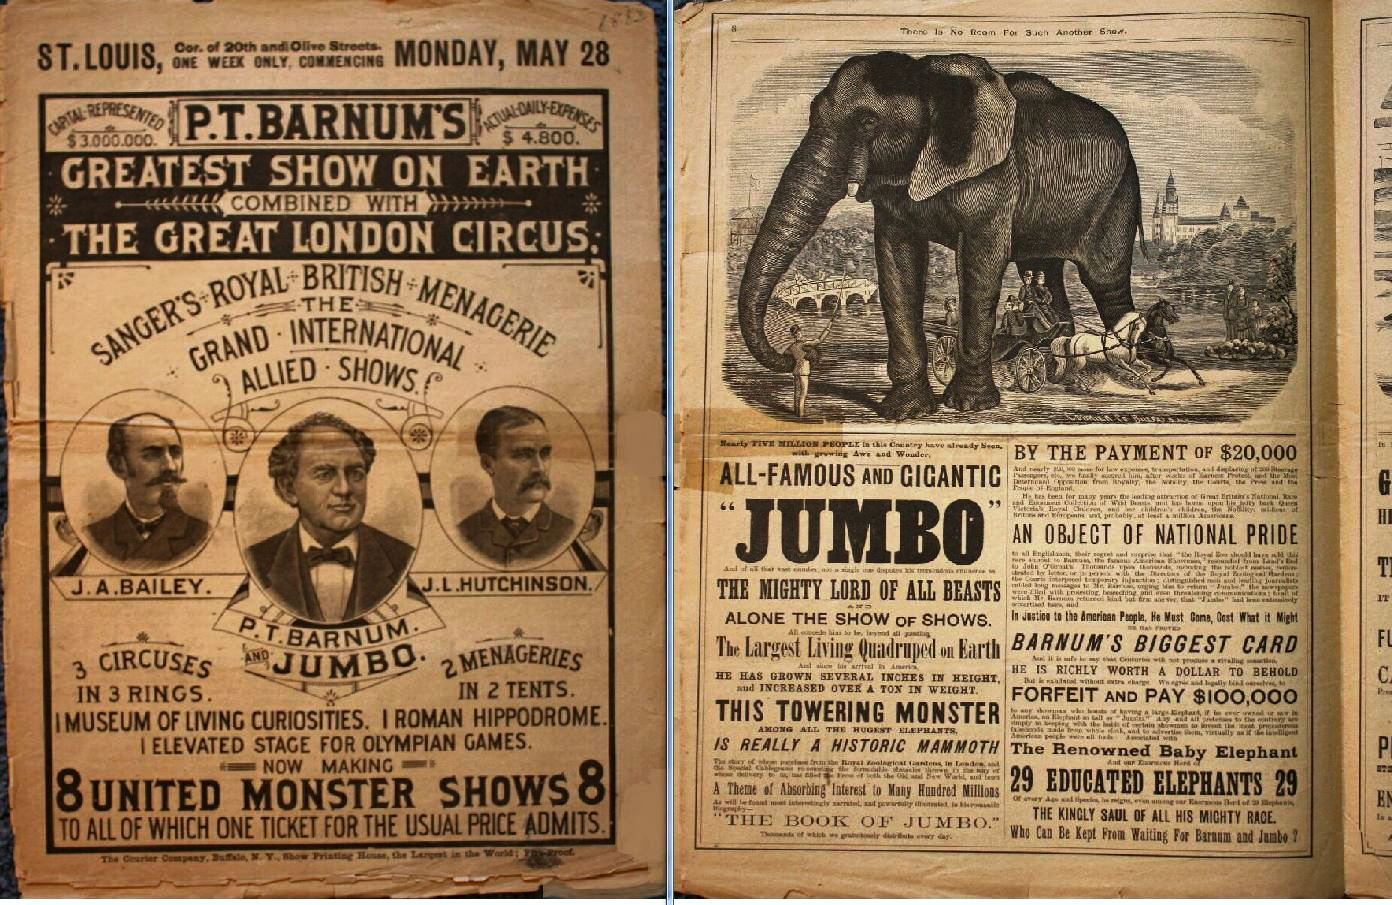 """This 1883 Greatest Show On Earth courier has portraits of the three principals on the cover—J.A. Bailey, P.T. Barnum & J.L. Hutchinson. Note that under Barnum's portrait in the center it says: P.T. Barnum & Jumbo. Inside the courier, an entire page is devoted to Jumbo and the other elephants in the show. Throughout the 16-page courier, there are mentions of Jumbo—""""Wait for Barnum & Jumbo,"""" """"No extra charge to see Jumbo"""" and other enticing verbiage. A similar courier sold at auction in 2008 for $692.00."""